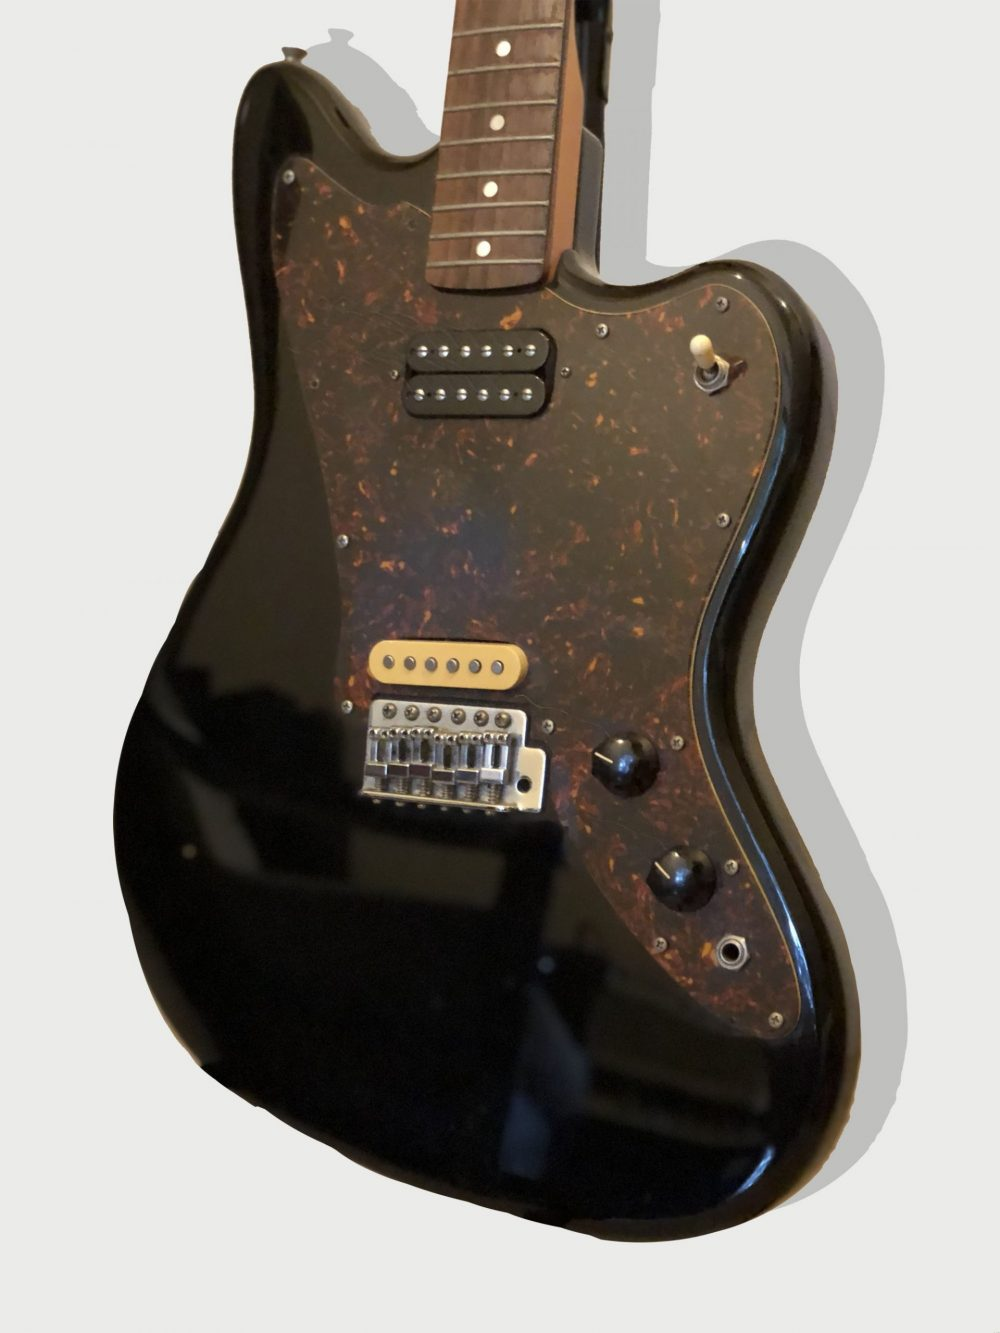 Squier by Fender, Jagmaster electric guitar. Black body, rosewood neck